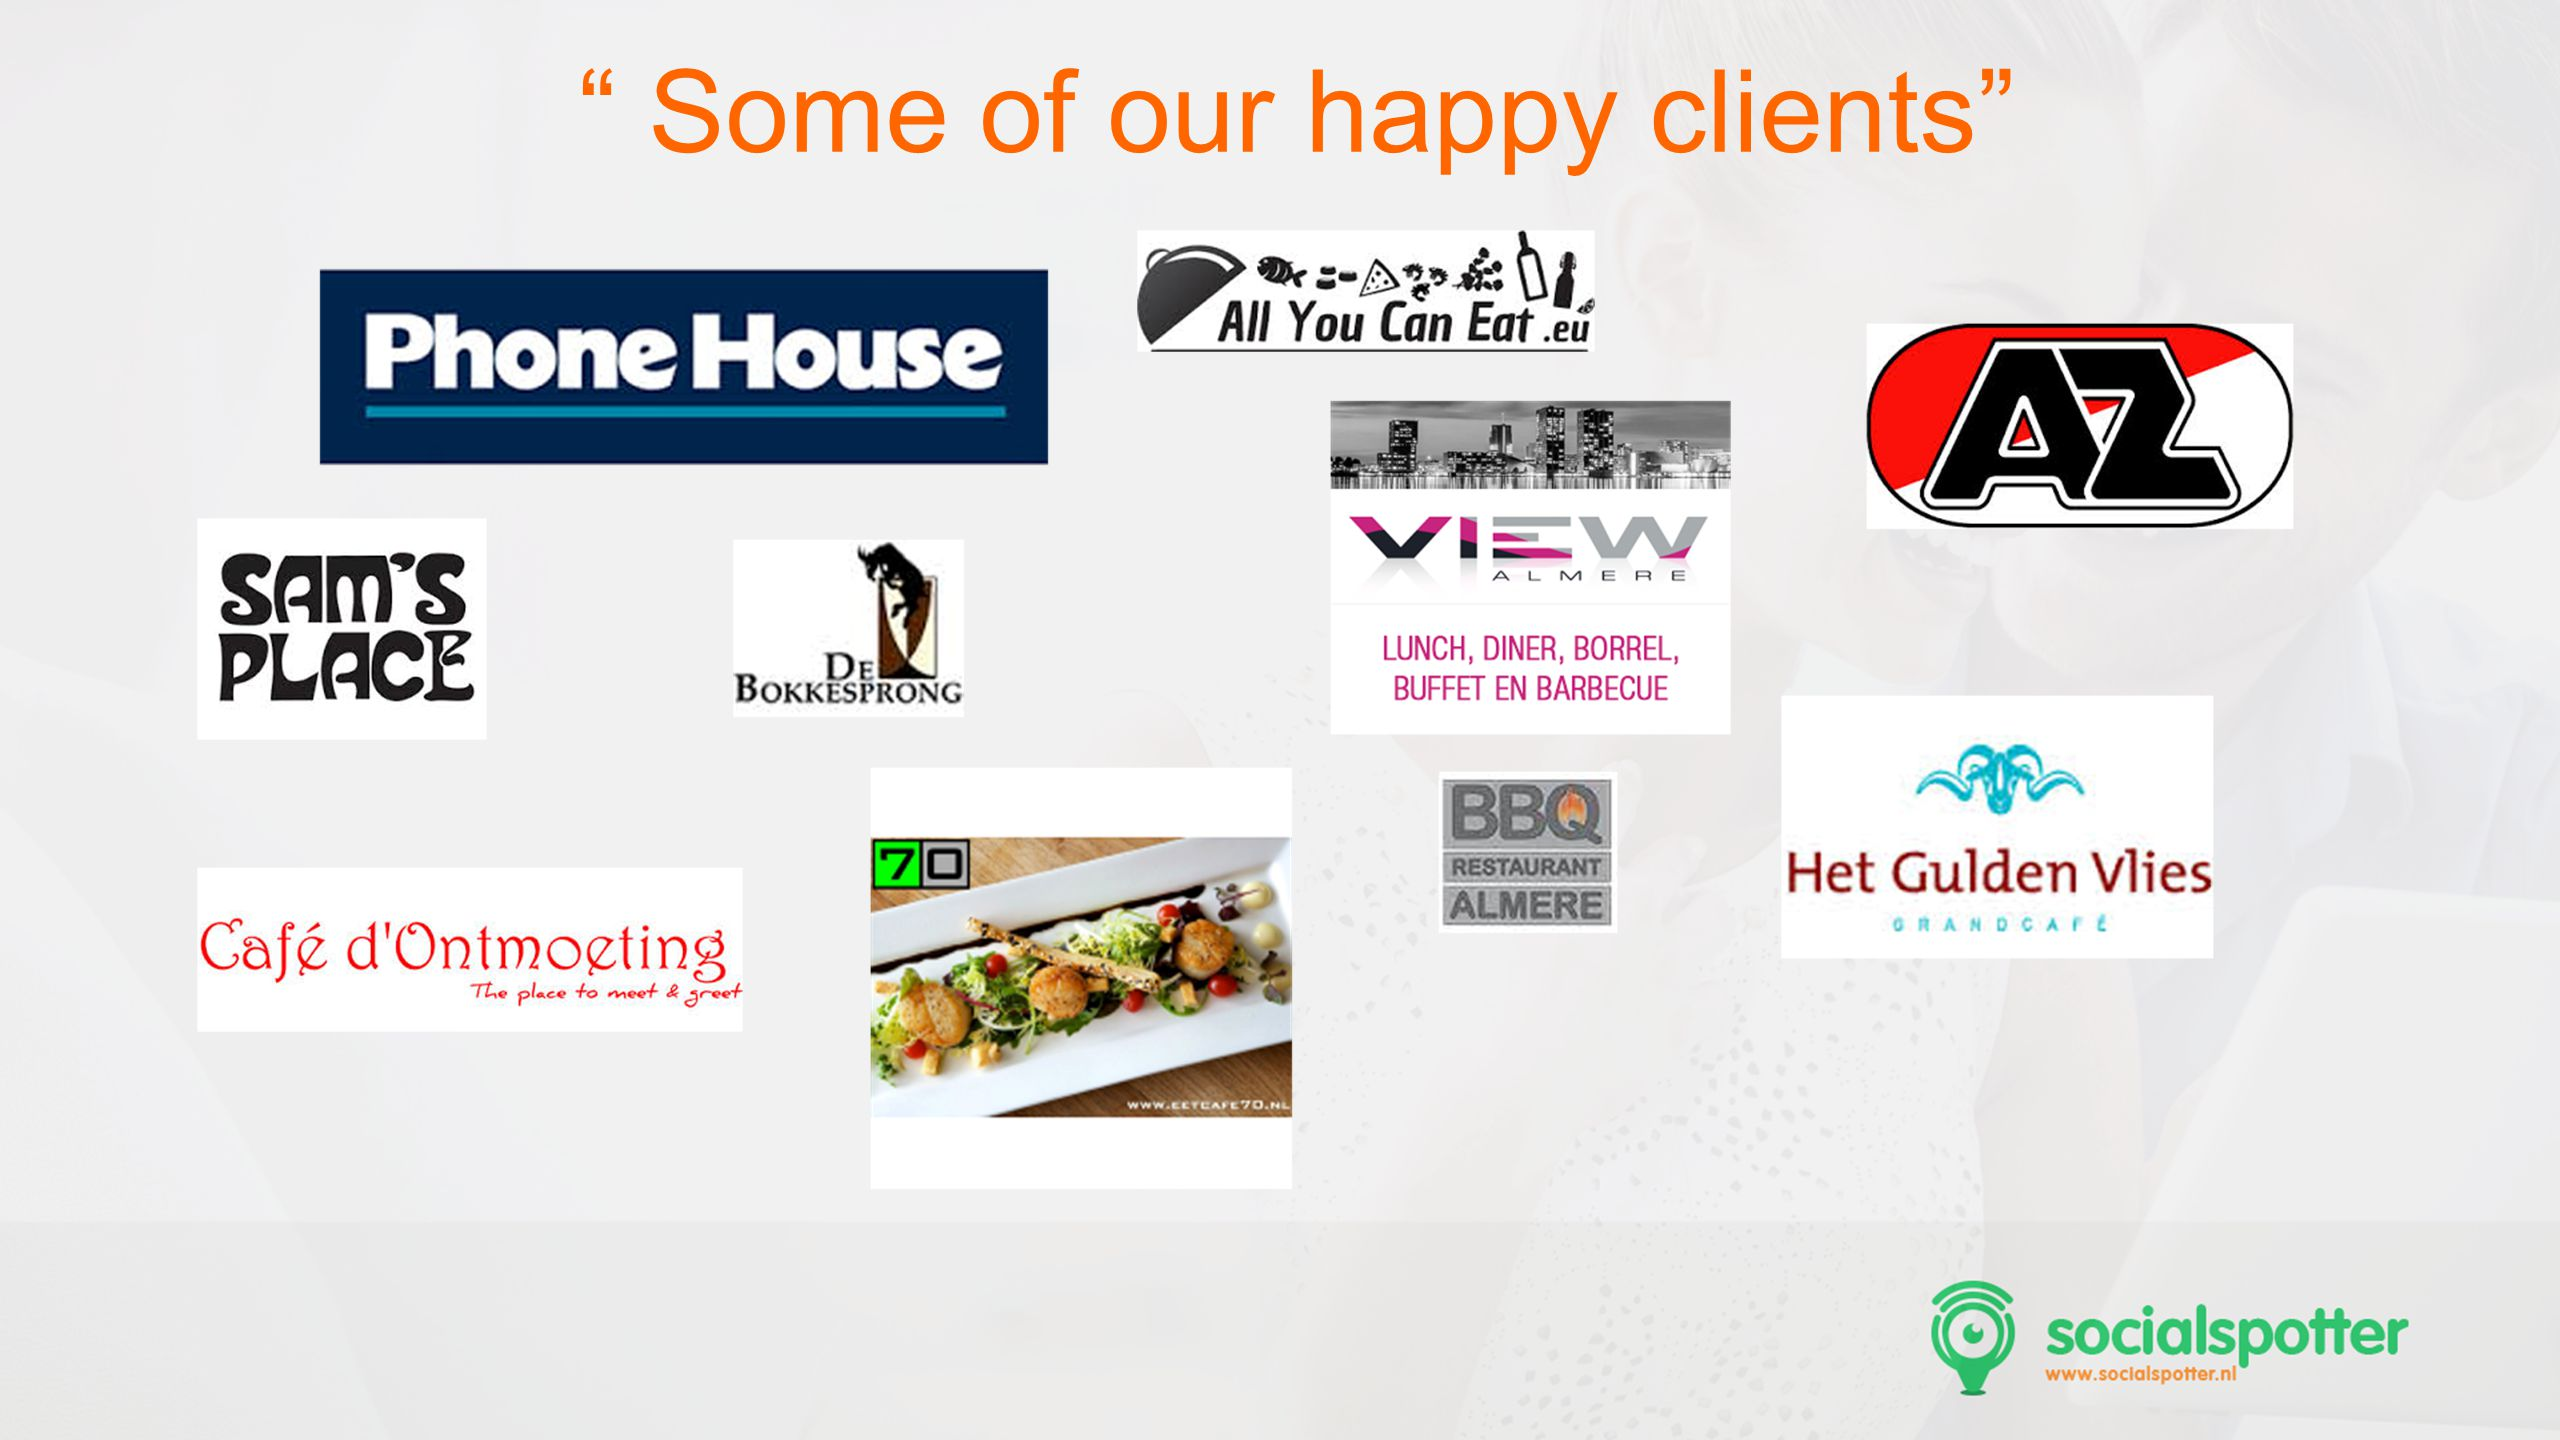 Some of our happy clients